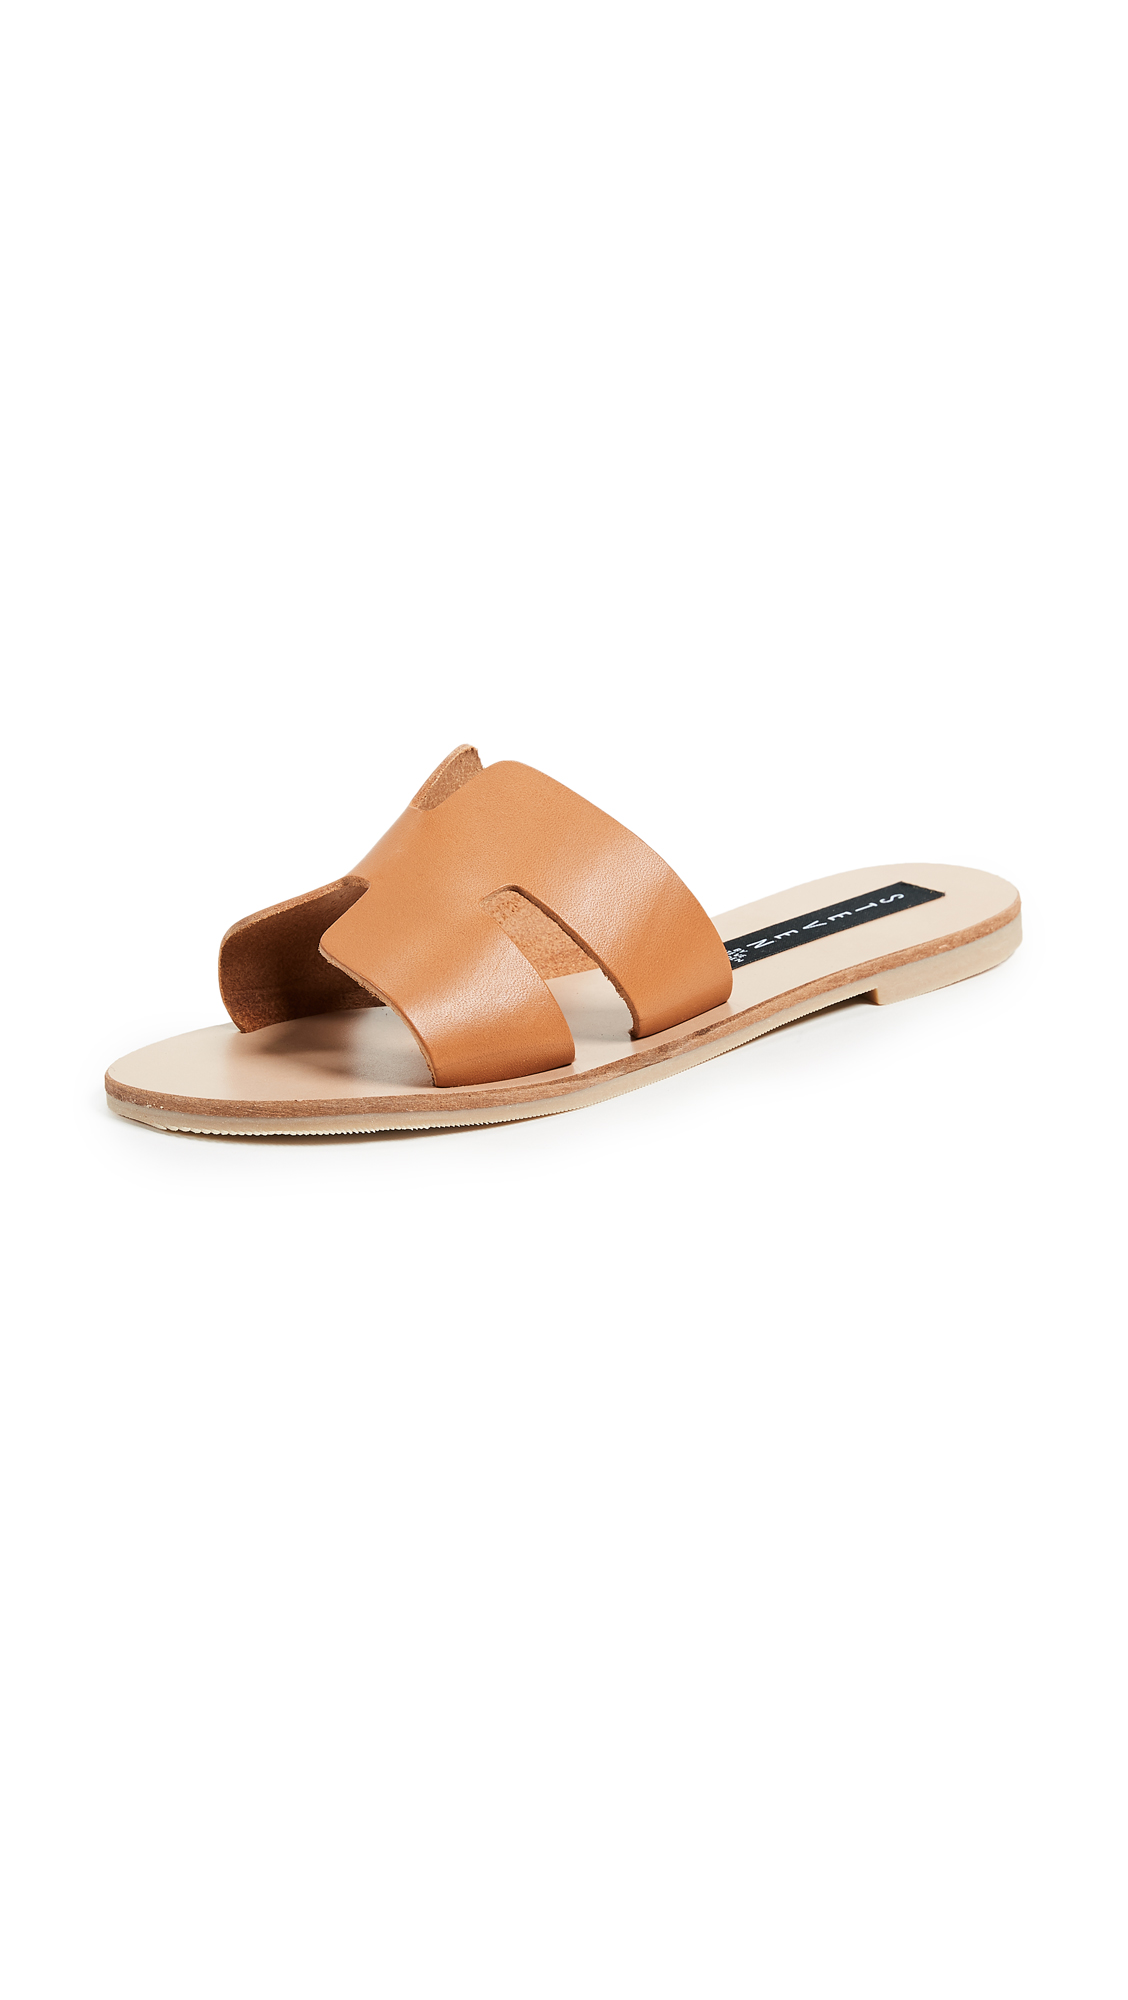 Steven Greece Slides - Cognac